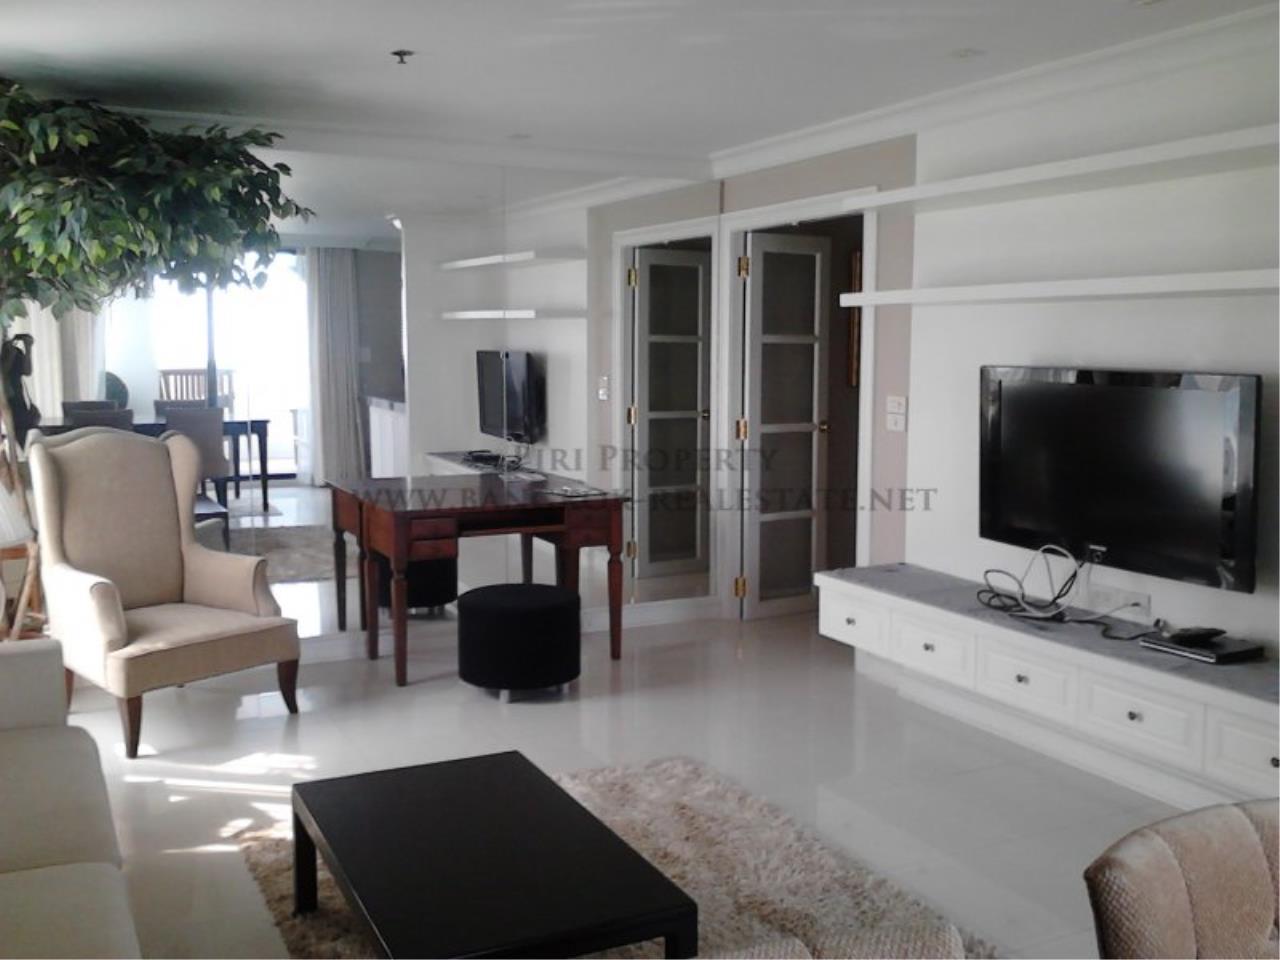 Piri Property Agency's ICON 3 - 2 Bedroom Unit for Sale - Center of Thonglor 1